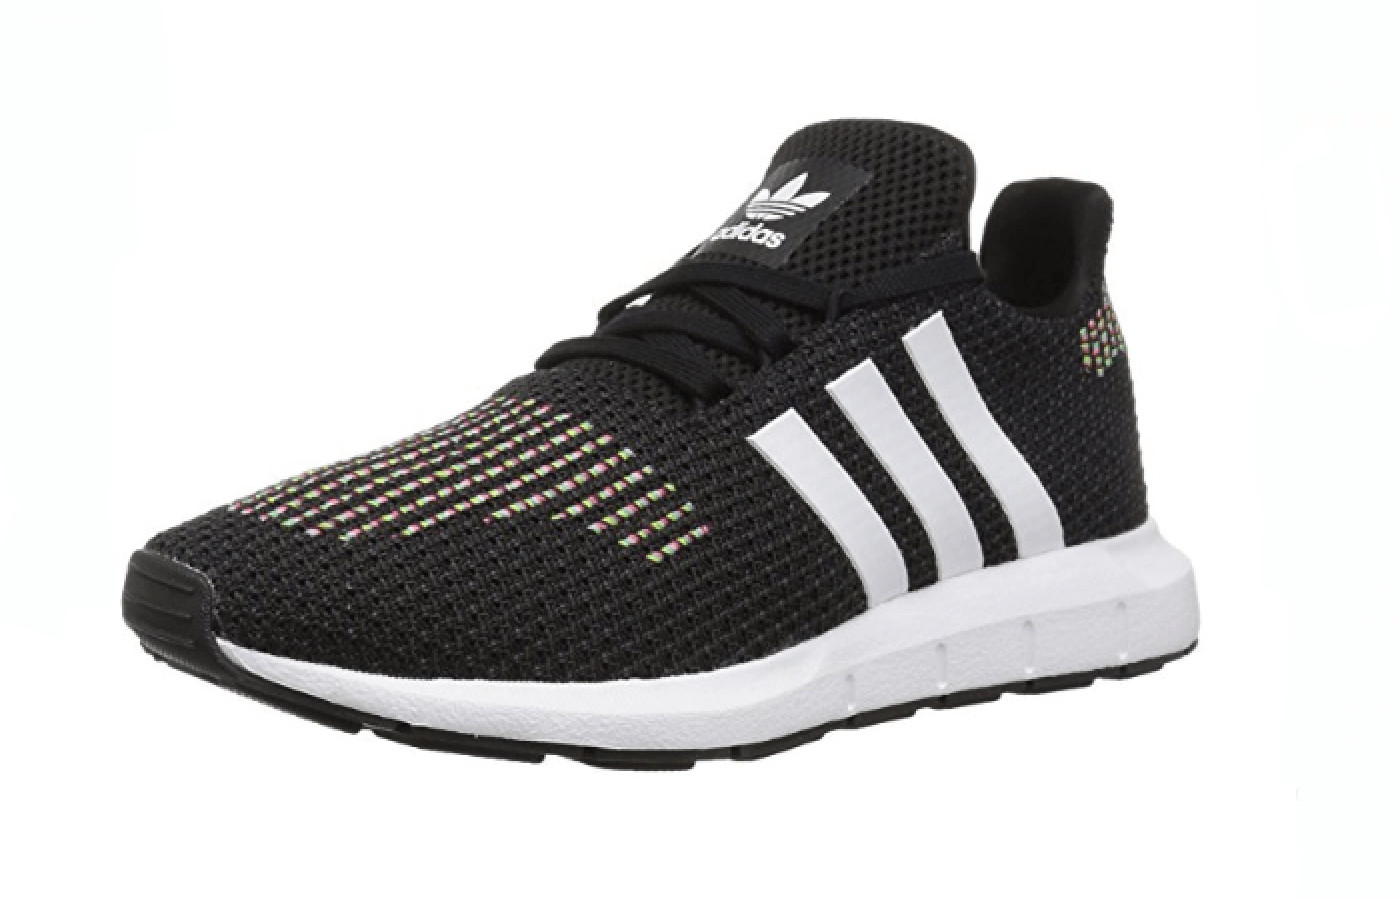 Adidas Swift Run first